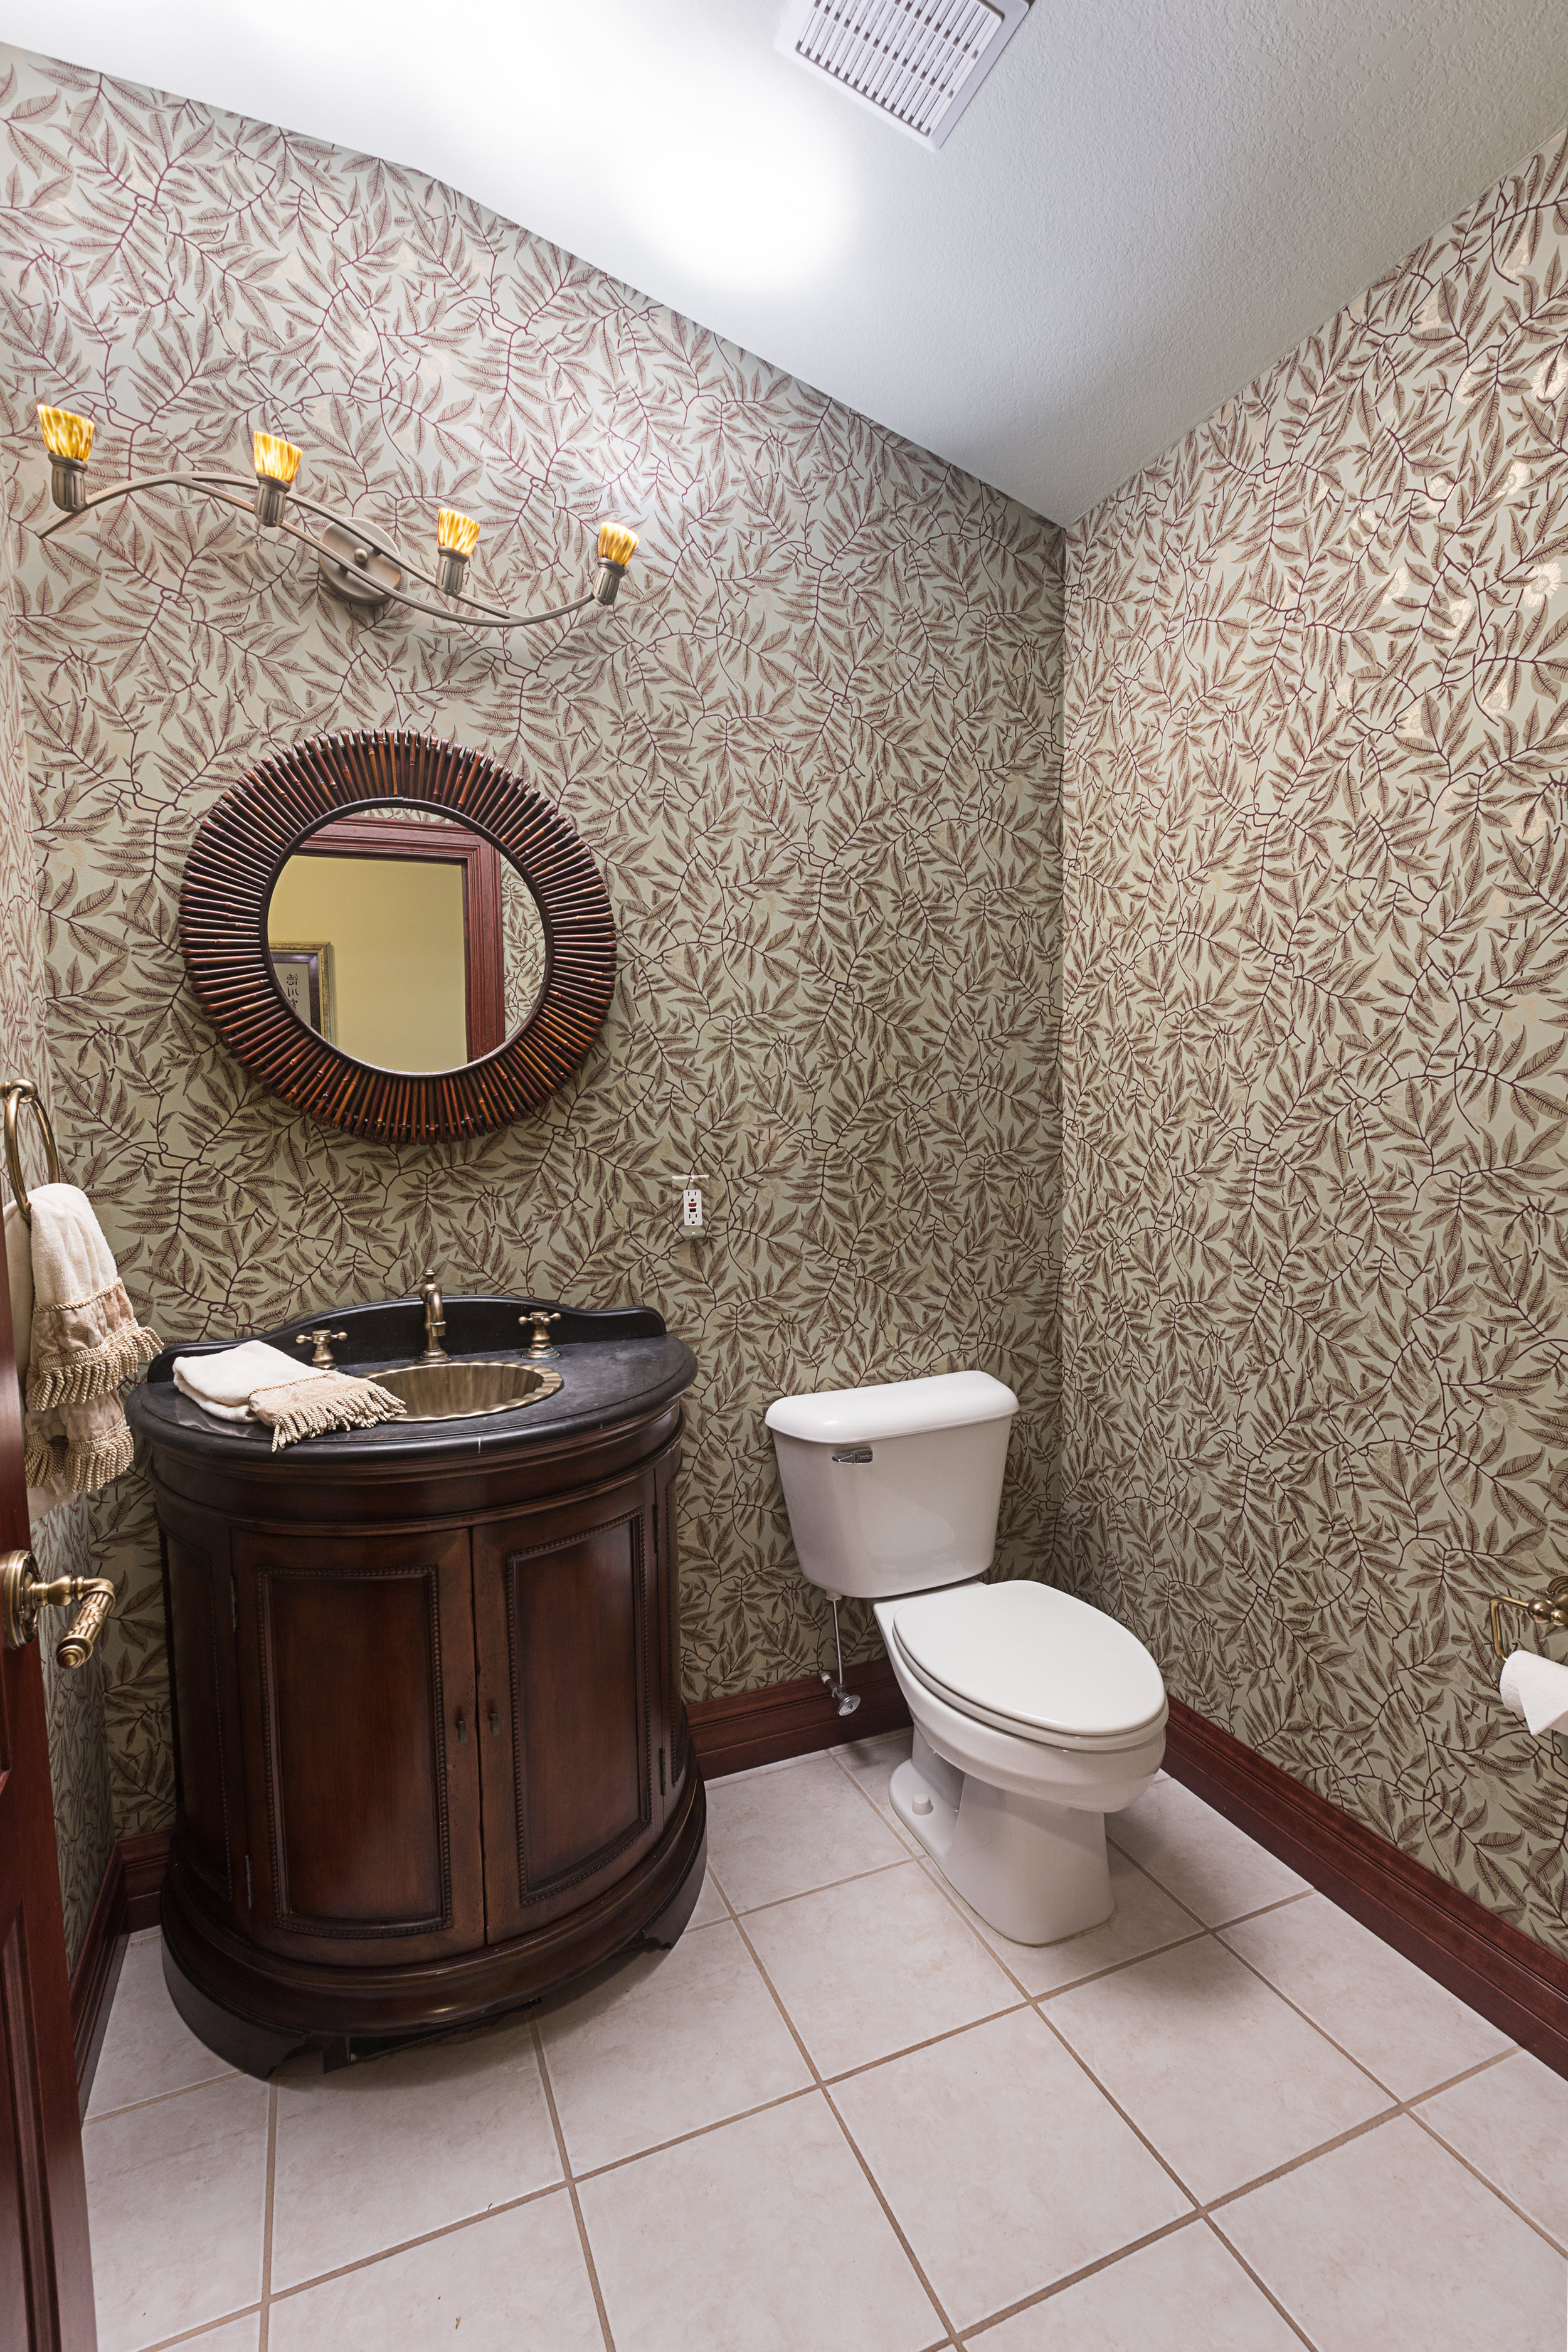 Bathroom3 - Copy.jpg